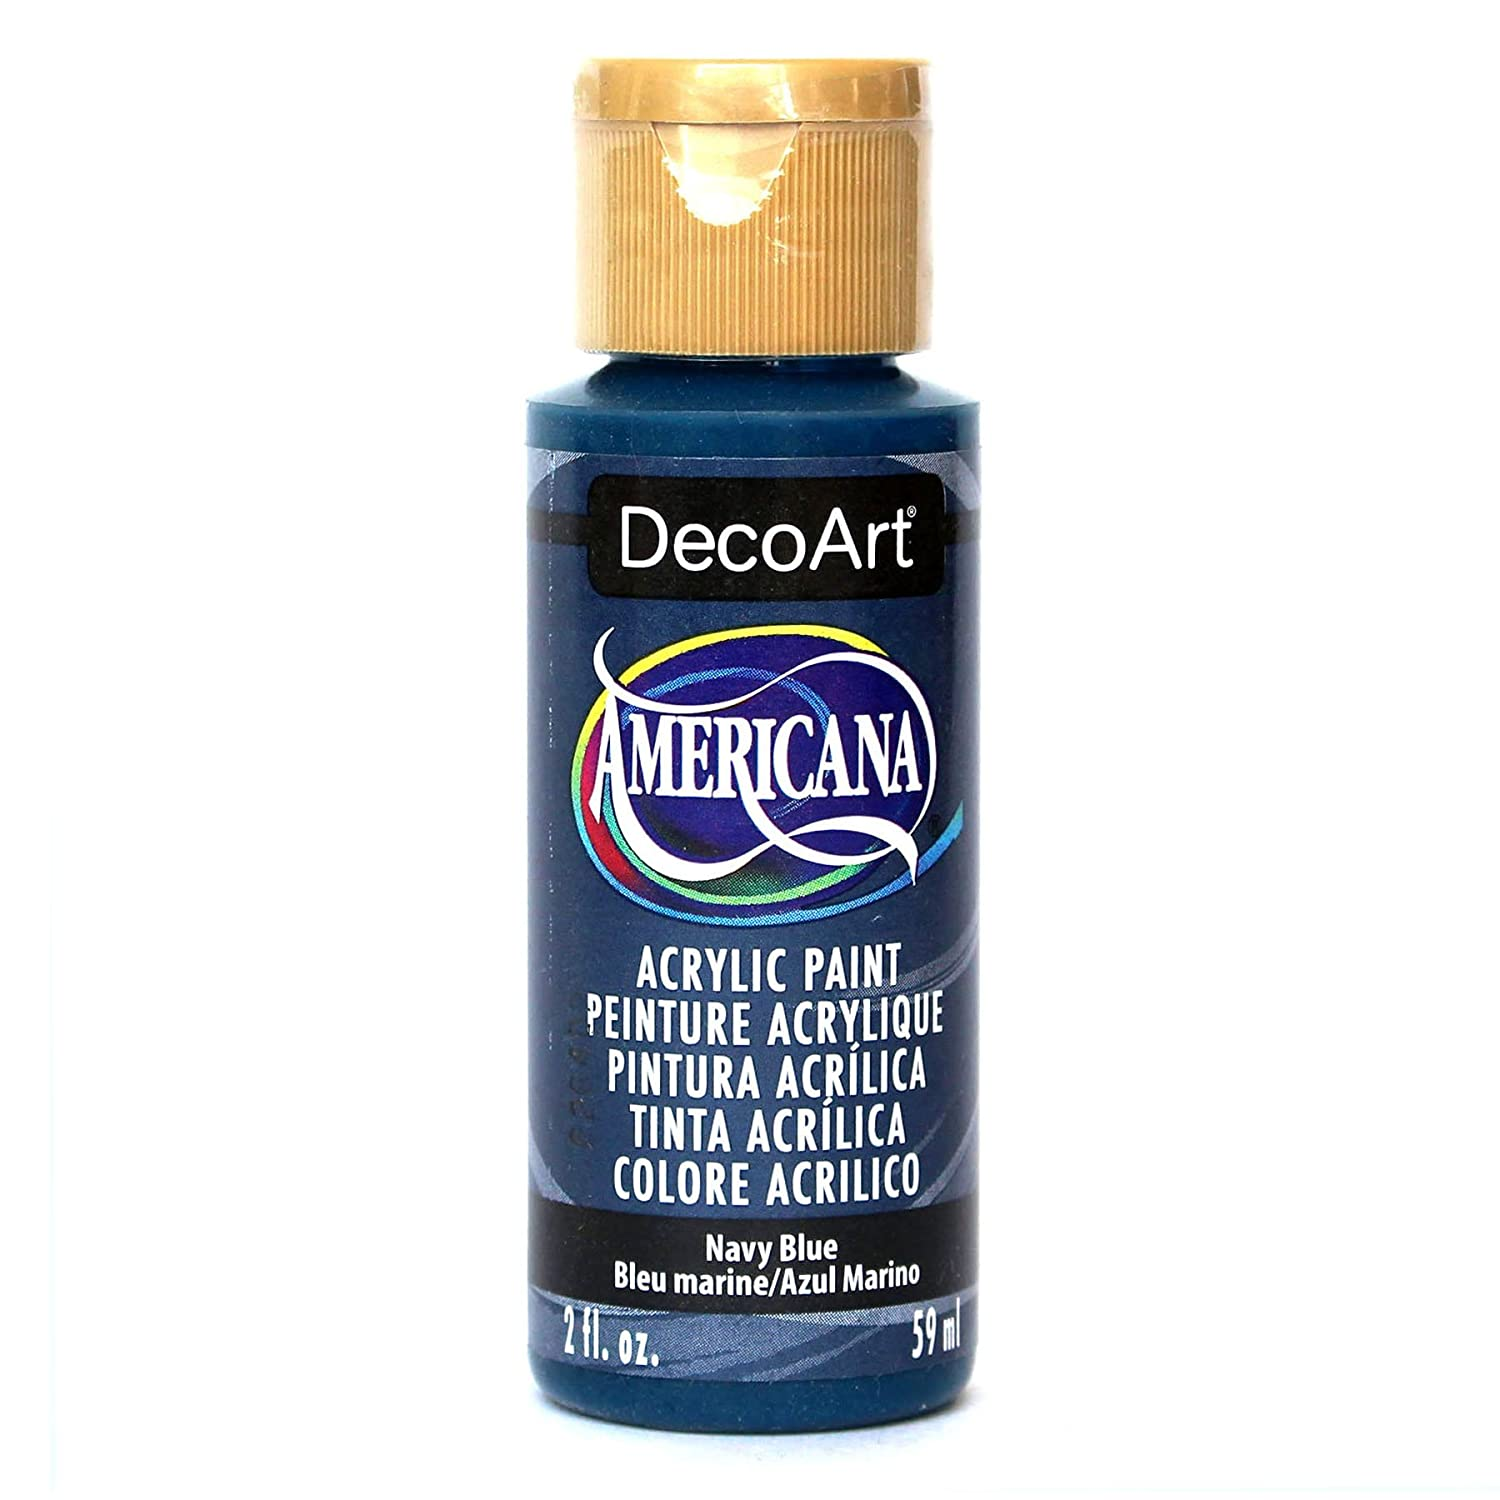 Deco Art Americana 2 oz Acrylic Multi-Purpose Paint, Navy Blue DecoArt DAO35-3